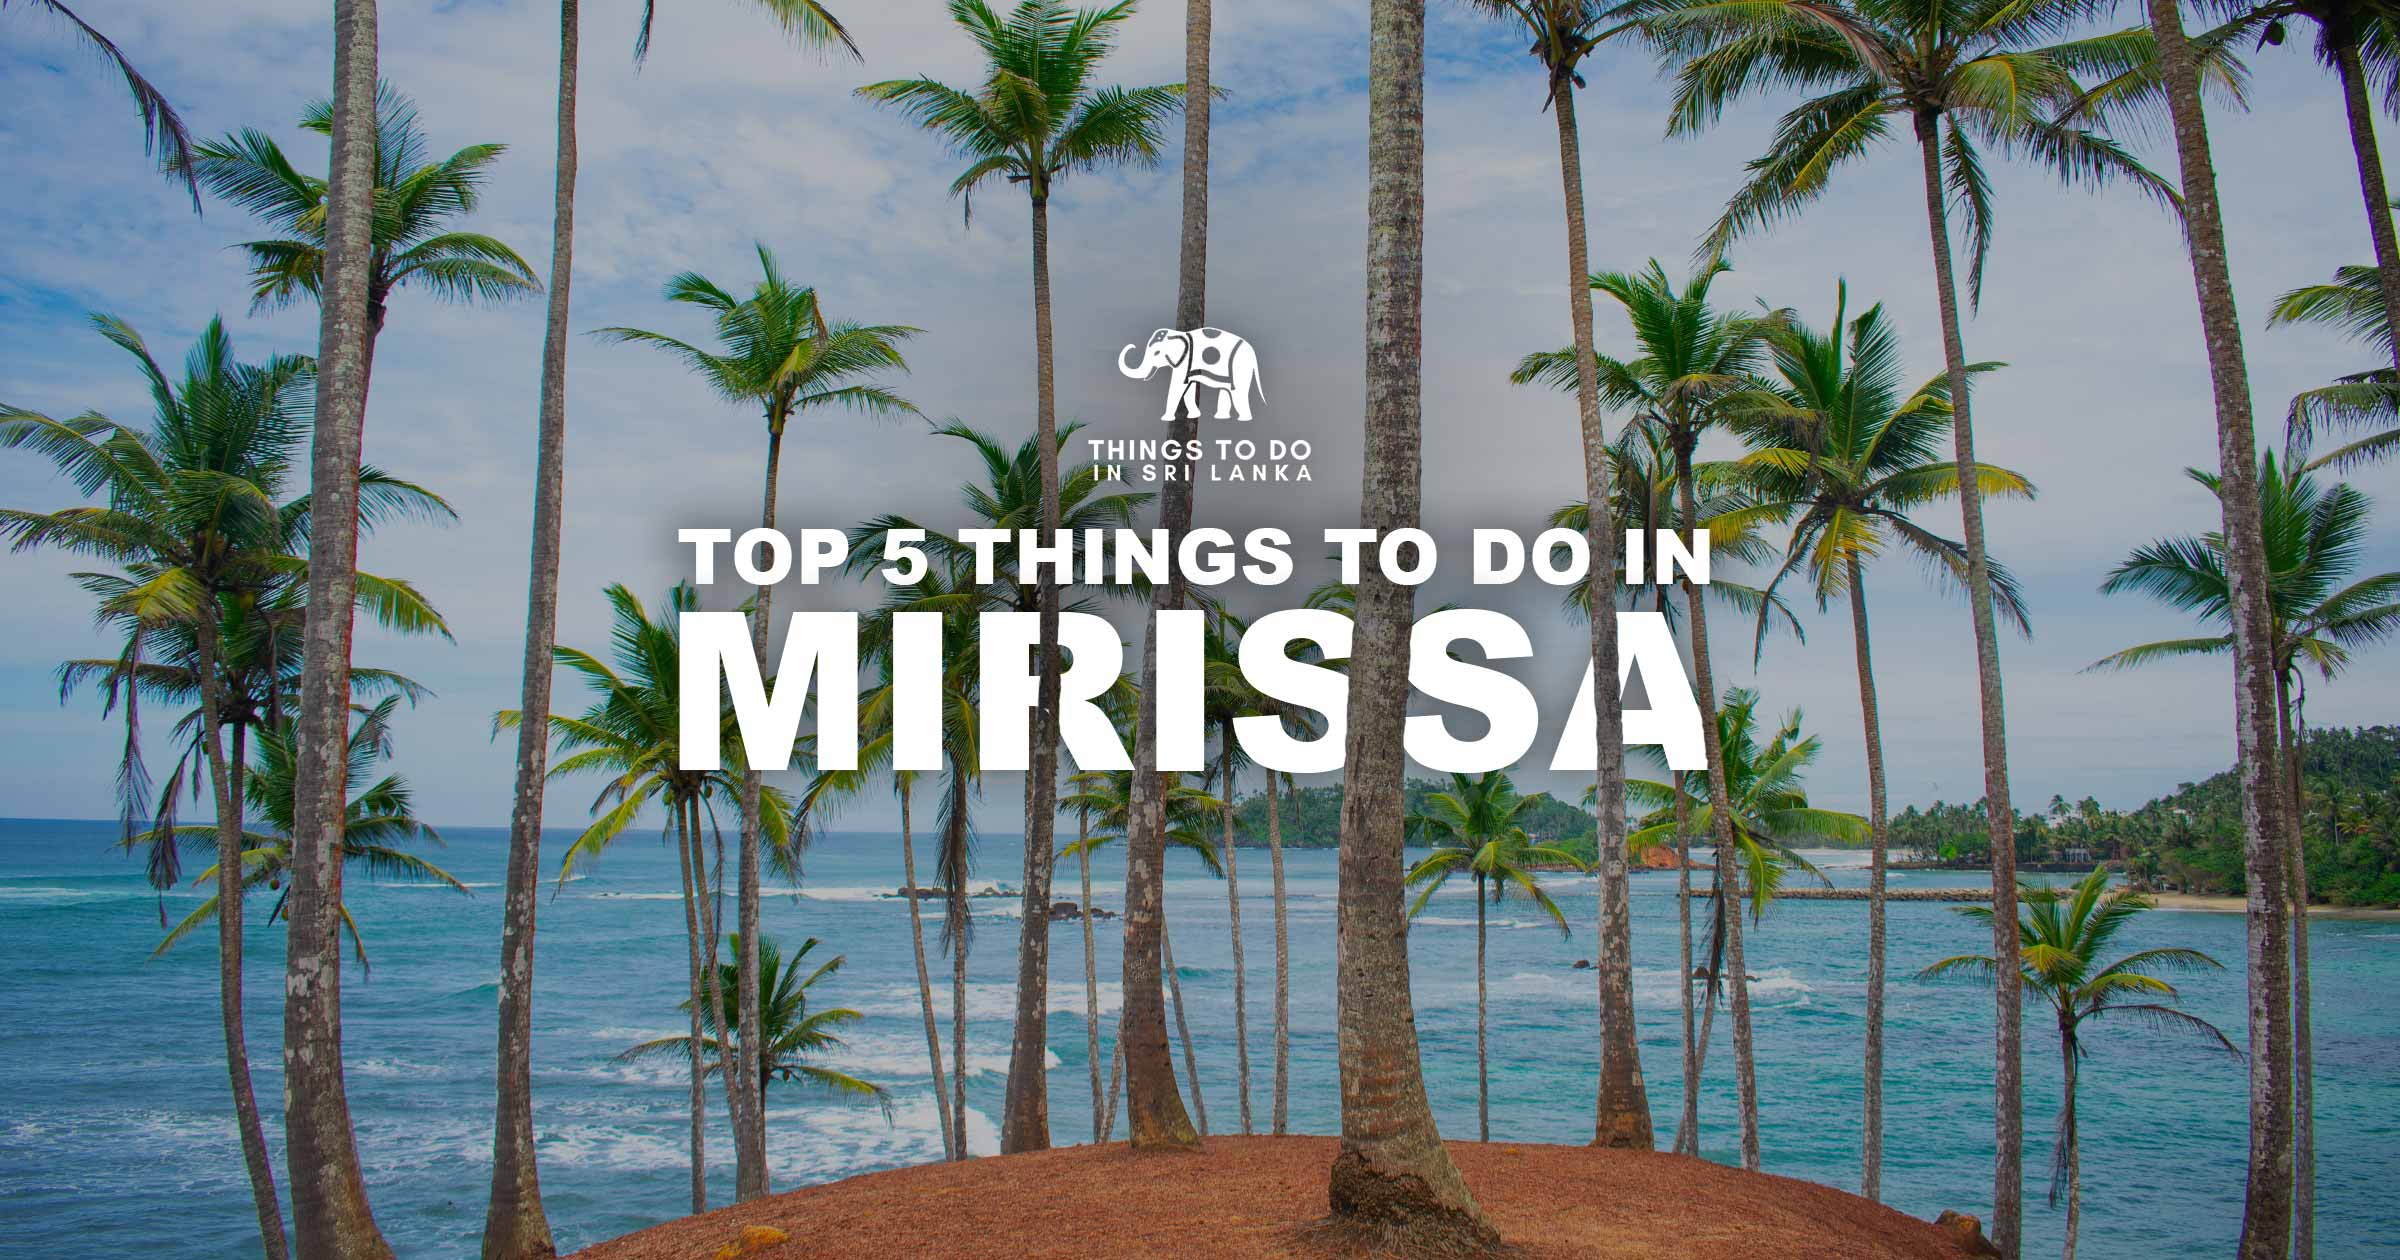 Top 5 things to do in Mirissa